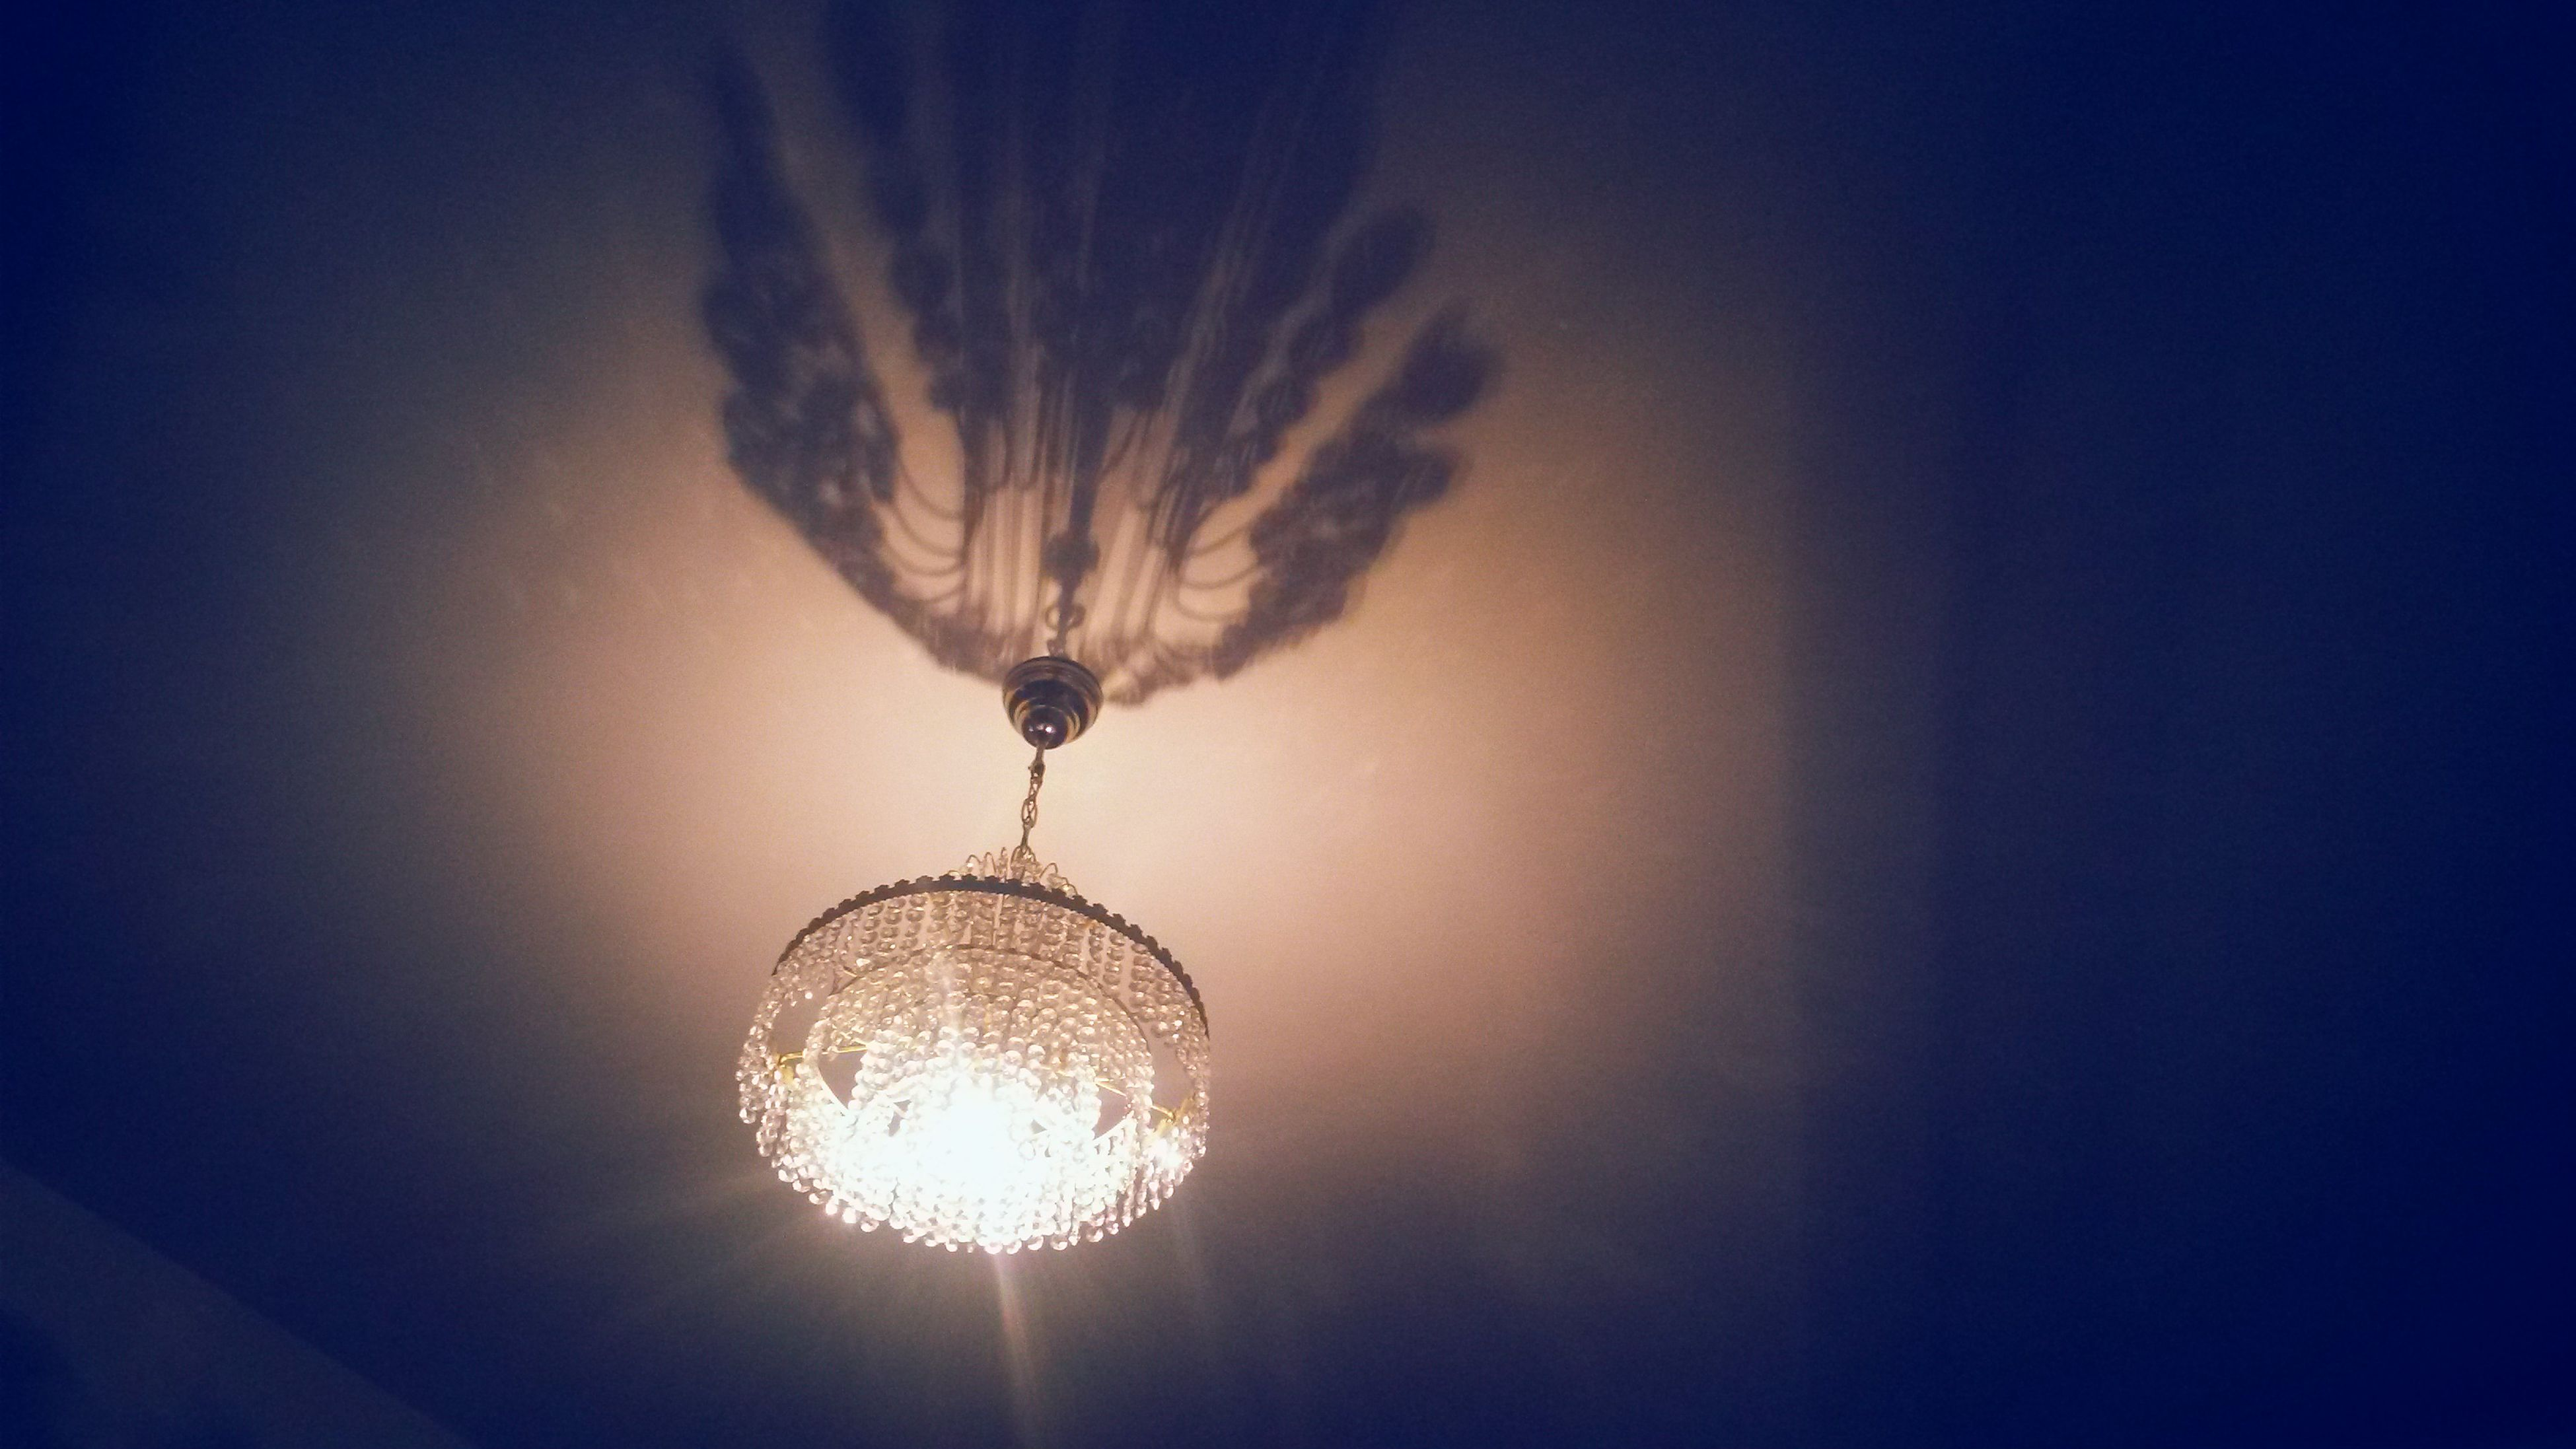 illuminated, lighting equipment, indoors, low angle view, ceiling, electricity, light bulb, electric light, hanging, glowing, light - natural phenomenon, electric lamp, decoration, close-up, chandelier, light, lit, glass - material, night, no people